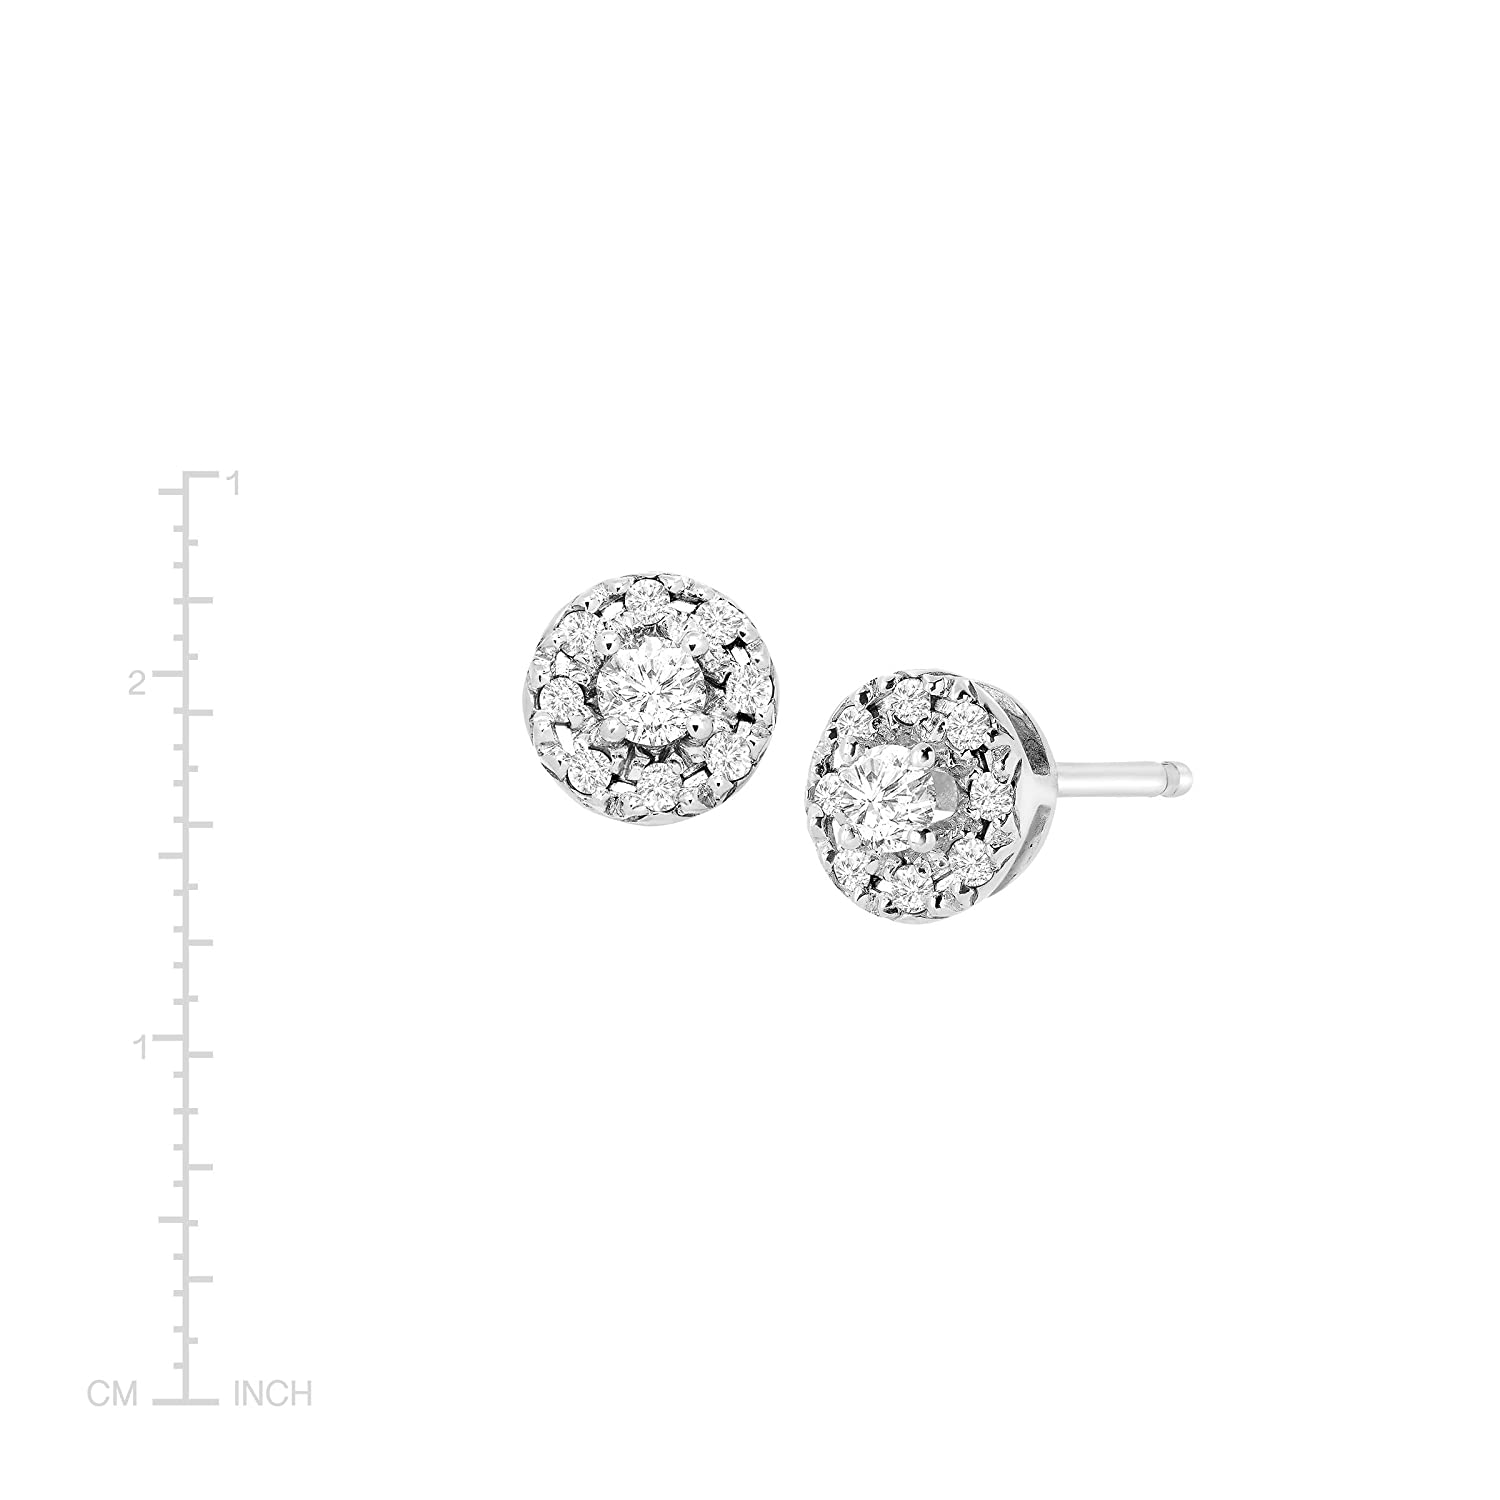 38669cb79 Amazon.com: 1/4 ct Diamond Round Halo Stud Earrings in Sterling Silver:  Jewelry